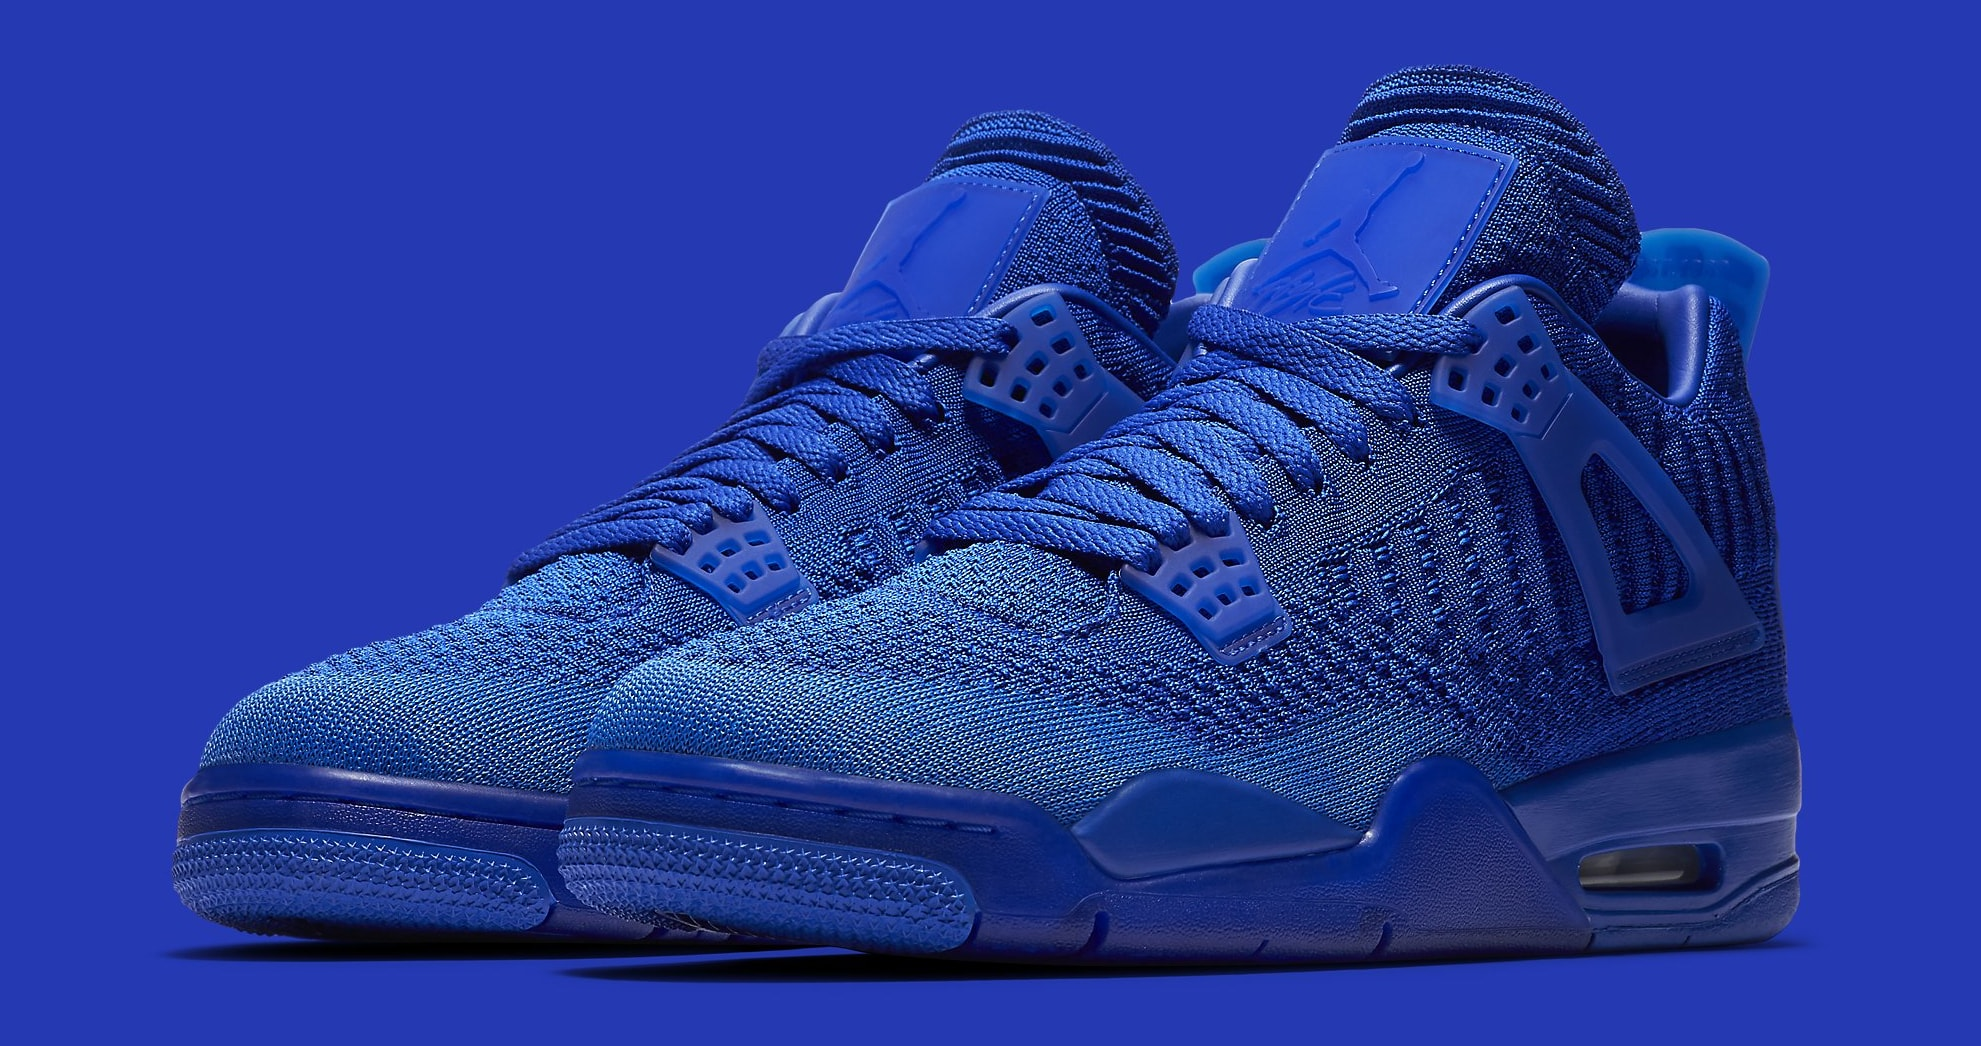 Air Jordan 4 Flyknit 'Game Royal' AQ3559-400 Pair